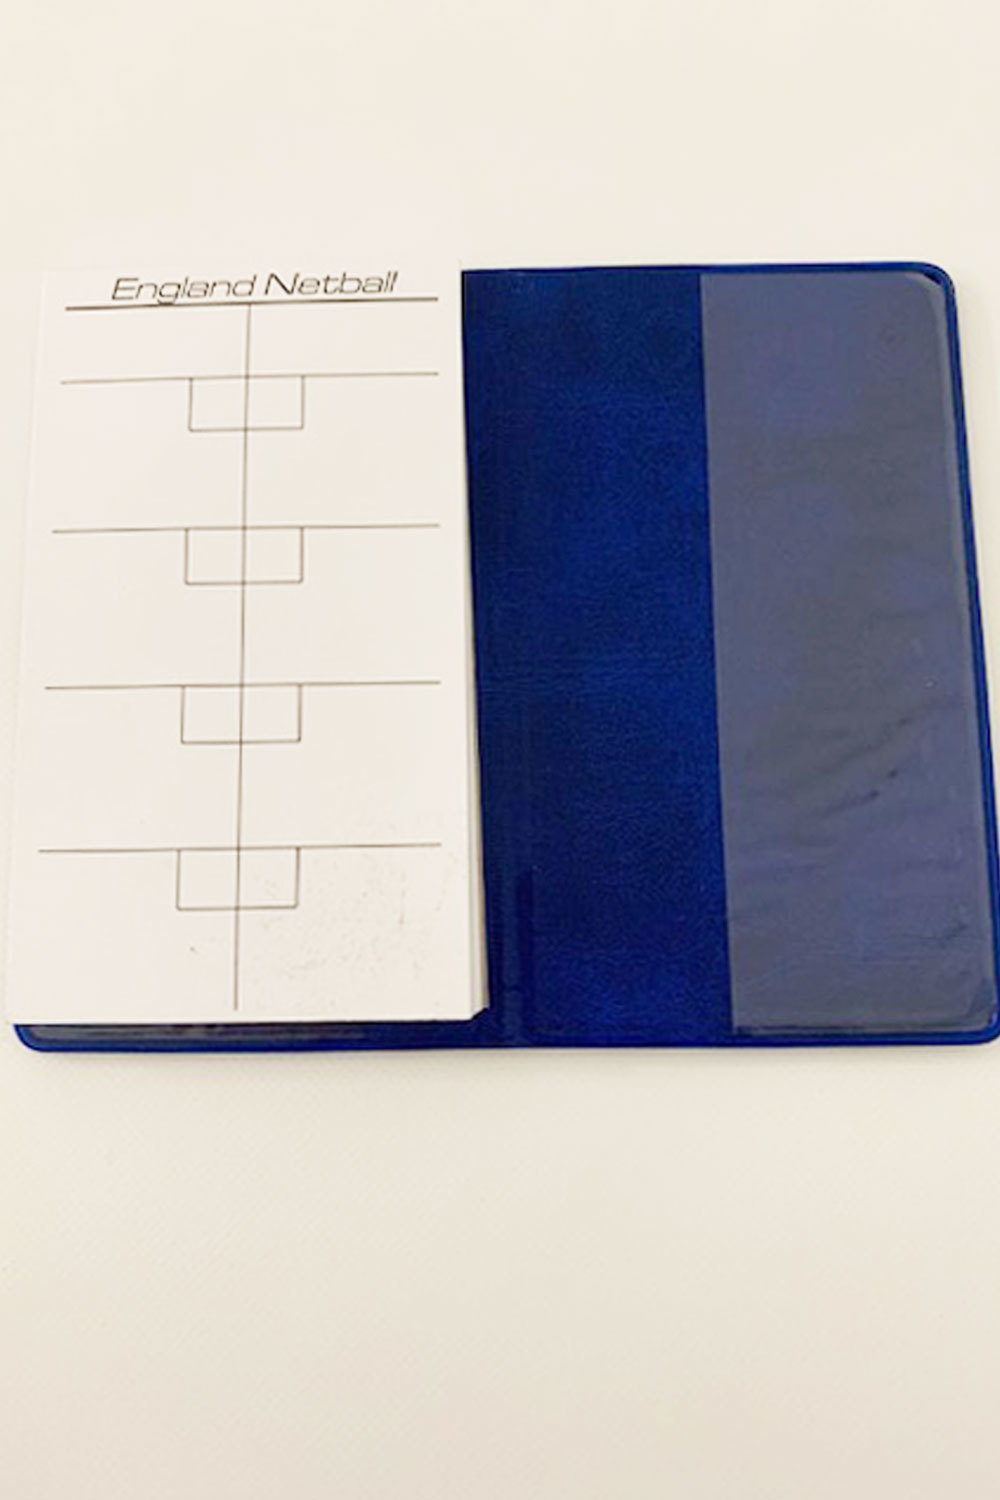 Match Score Pad Holder With Score Pad